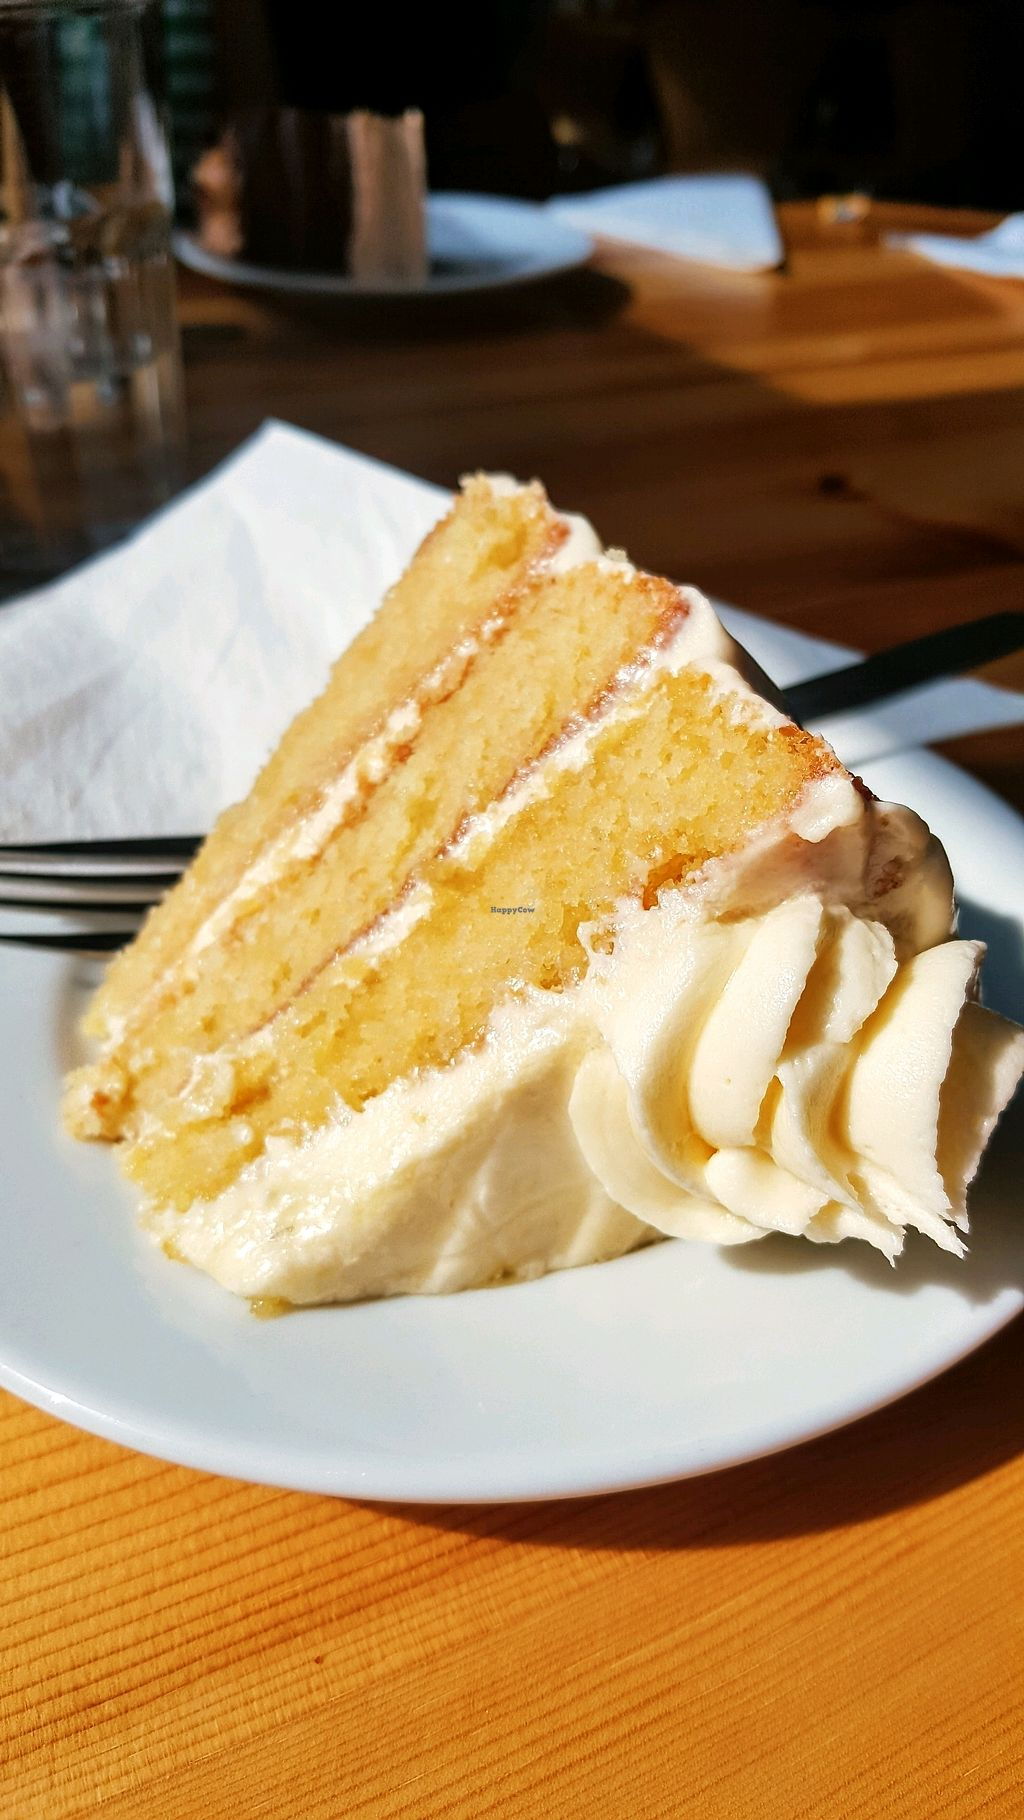 """Photo of The Willow Tree Cafe  by <a href=""""/members/profile/simon50"""">simon50</a> <br/>Caramel layer cake <br/> April 14, 2018  - <a href='/contact/abuse/image/97937/385824'>Report</a>"""